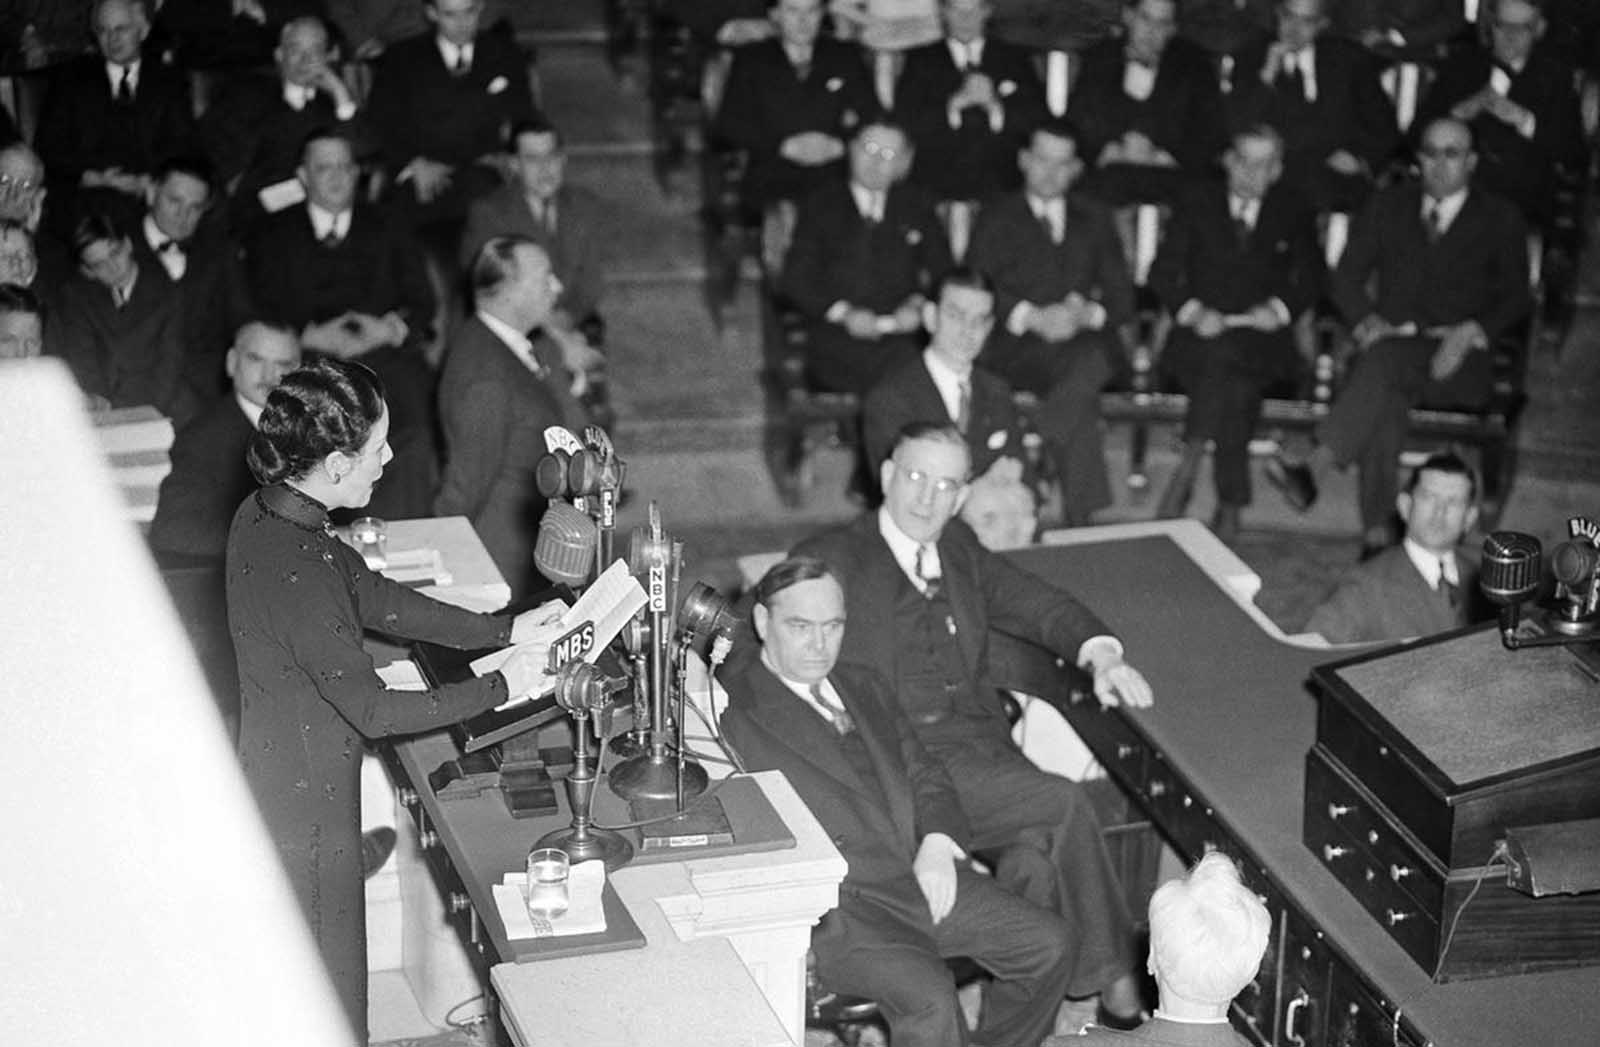 With practically every member present, the U.S. House of Representatives in Washington, District of Columbia, hears its second woman speak other than a member, as Madame Chiang Kai-Shek, wife of China's Generalissimo, pleads for maximum efforts to halt Japan's war aims on February 18, 1943.